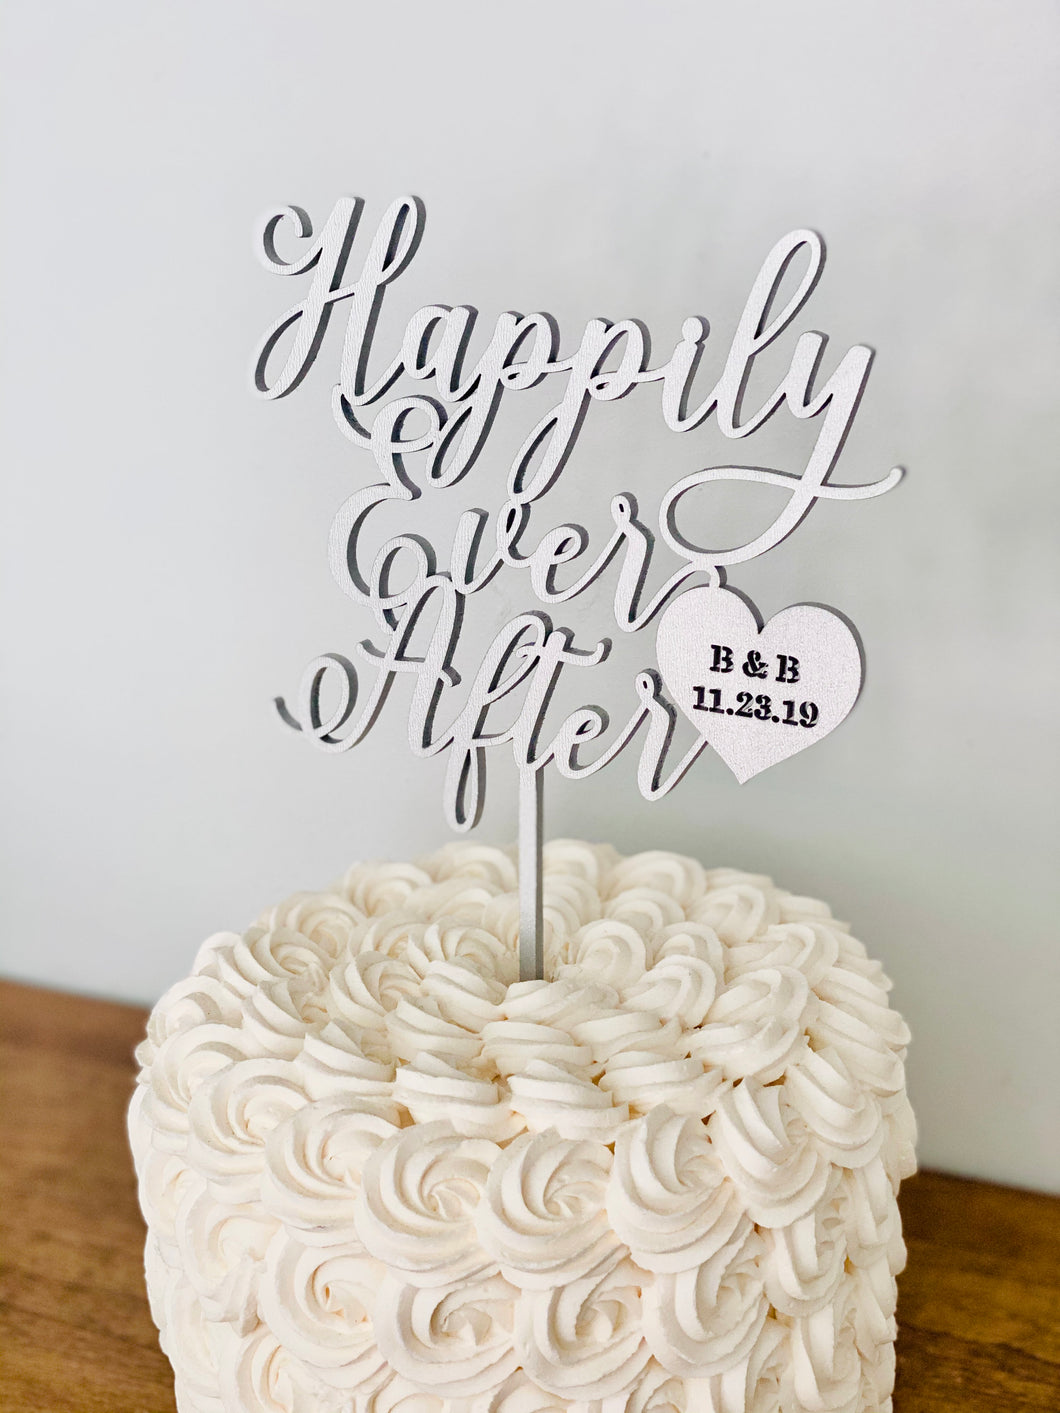 Personalized Happily Ever After Heart Initials & Date Cake Topper, 6